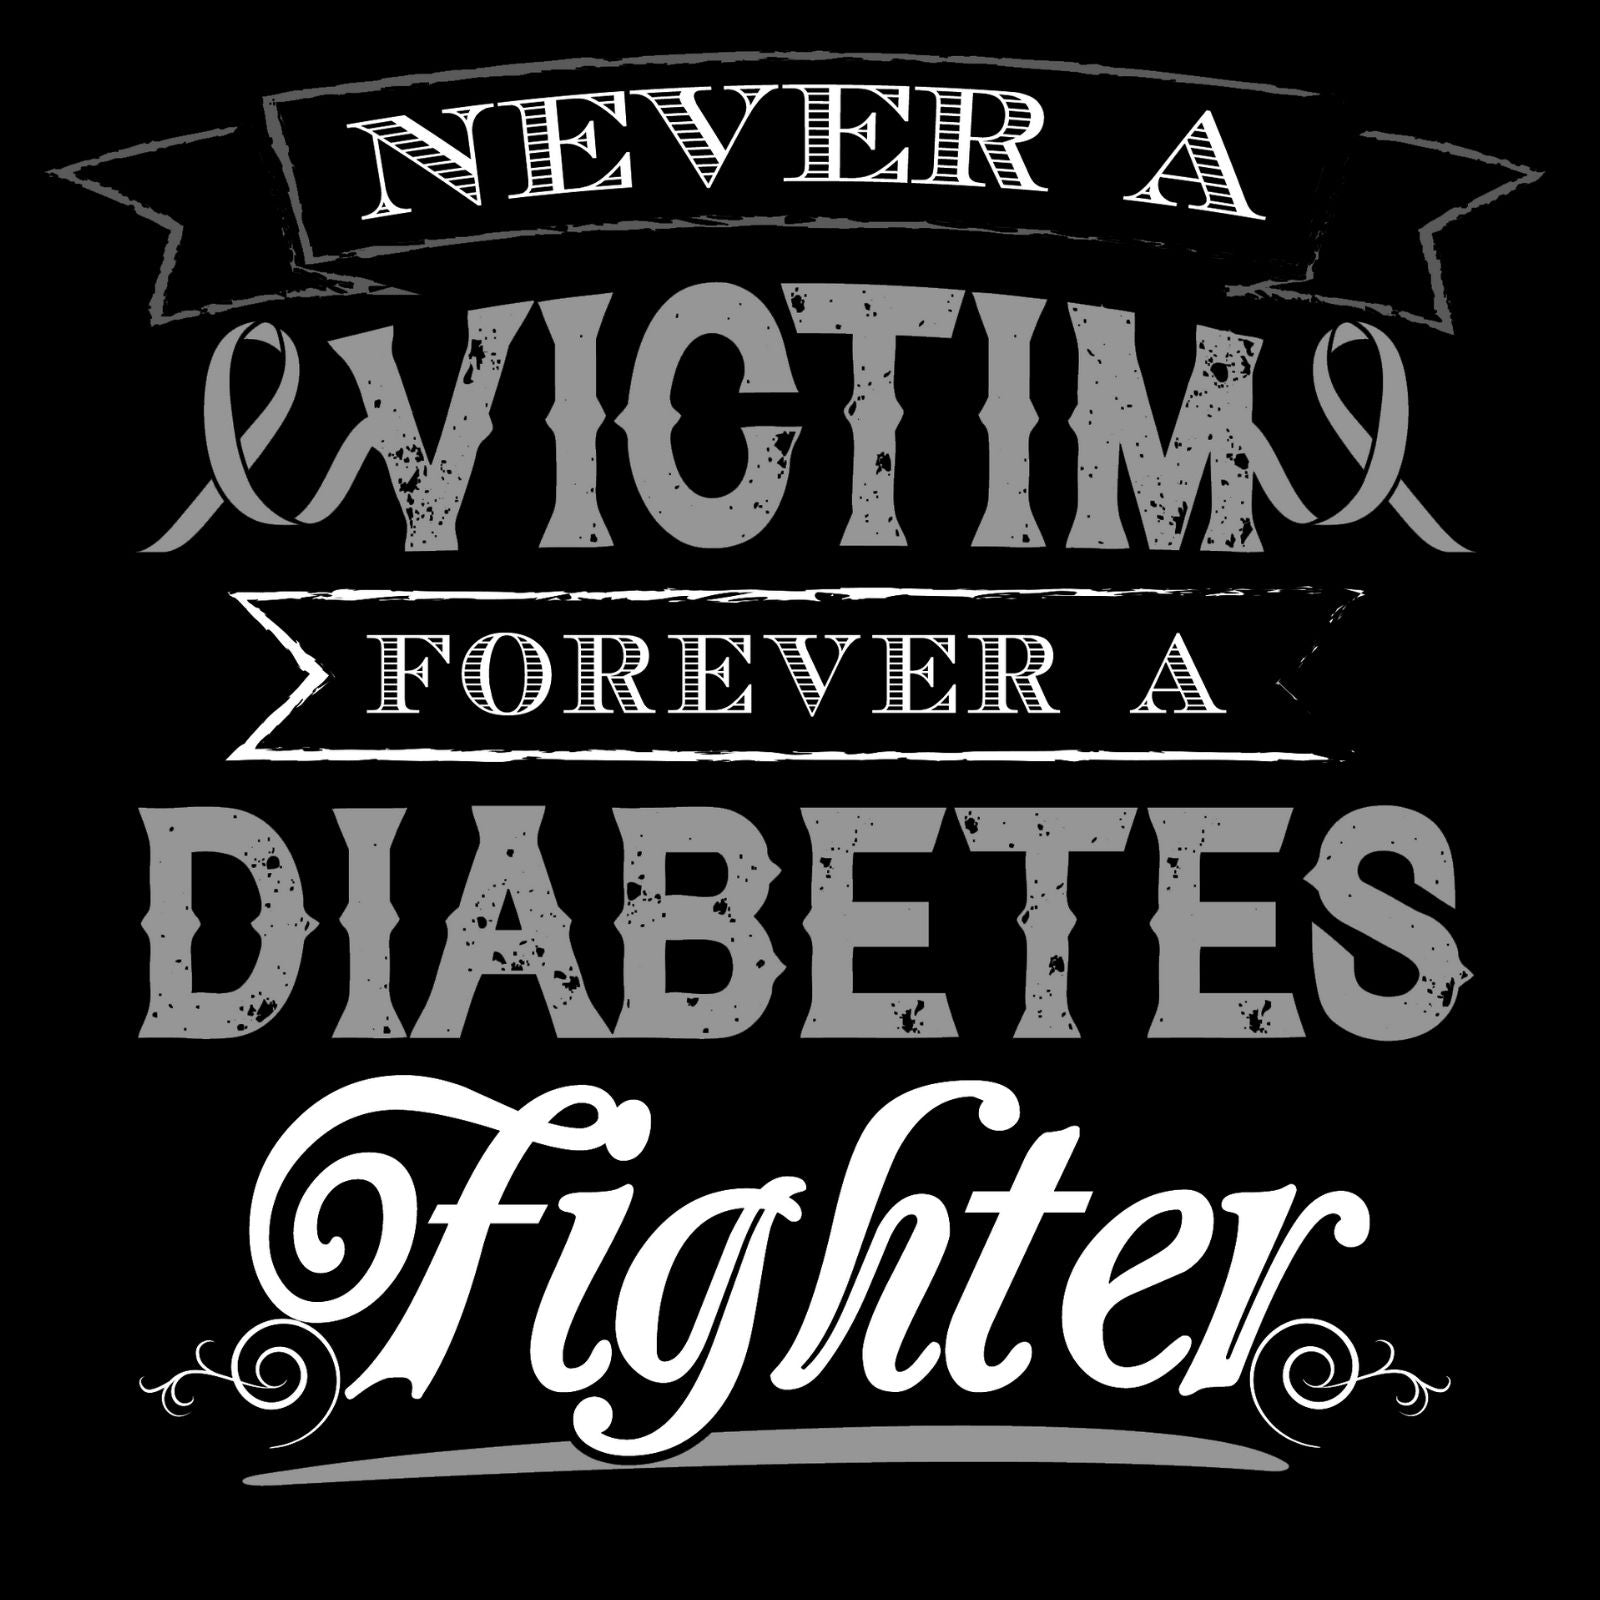 Never A Victim Forever A Diabetes Fighter - Bastard Graphics